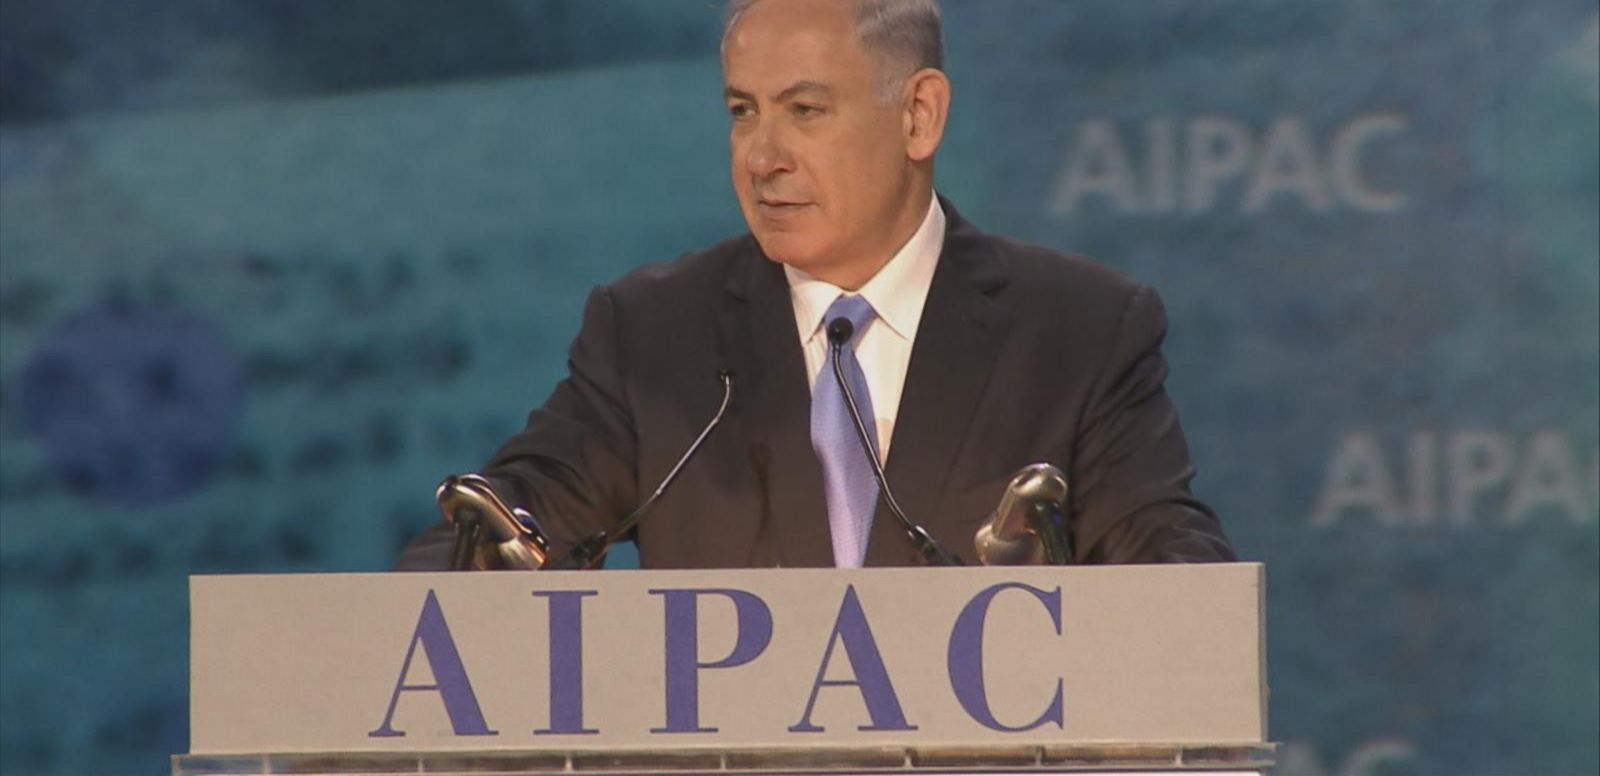 VIDEO: Israeli Prime Minister Benjamin Netanyahu's Controversial Visit to Washington, DC